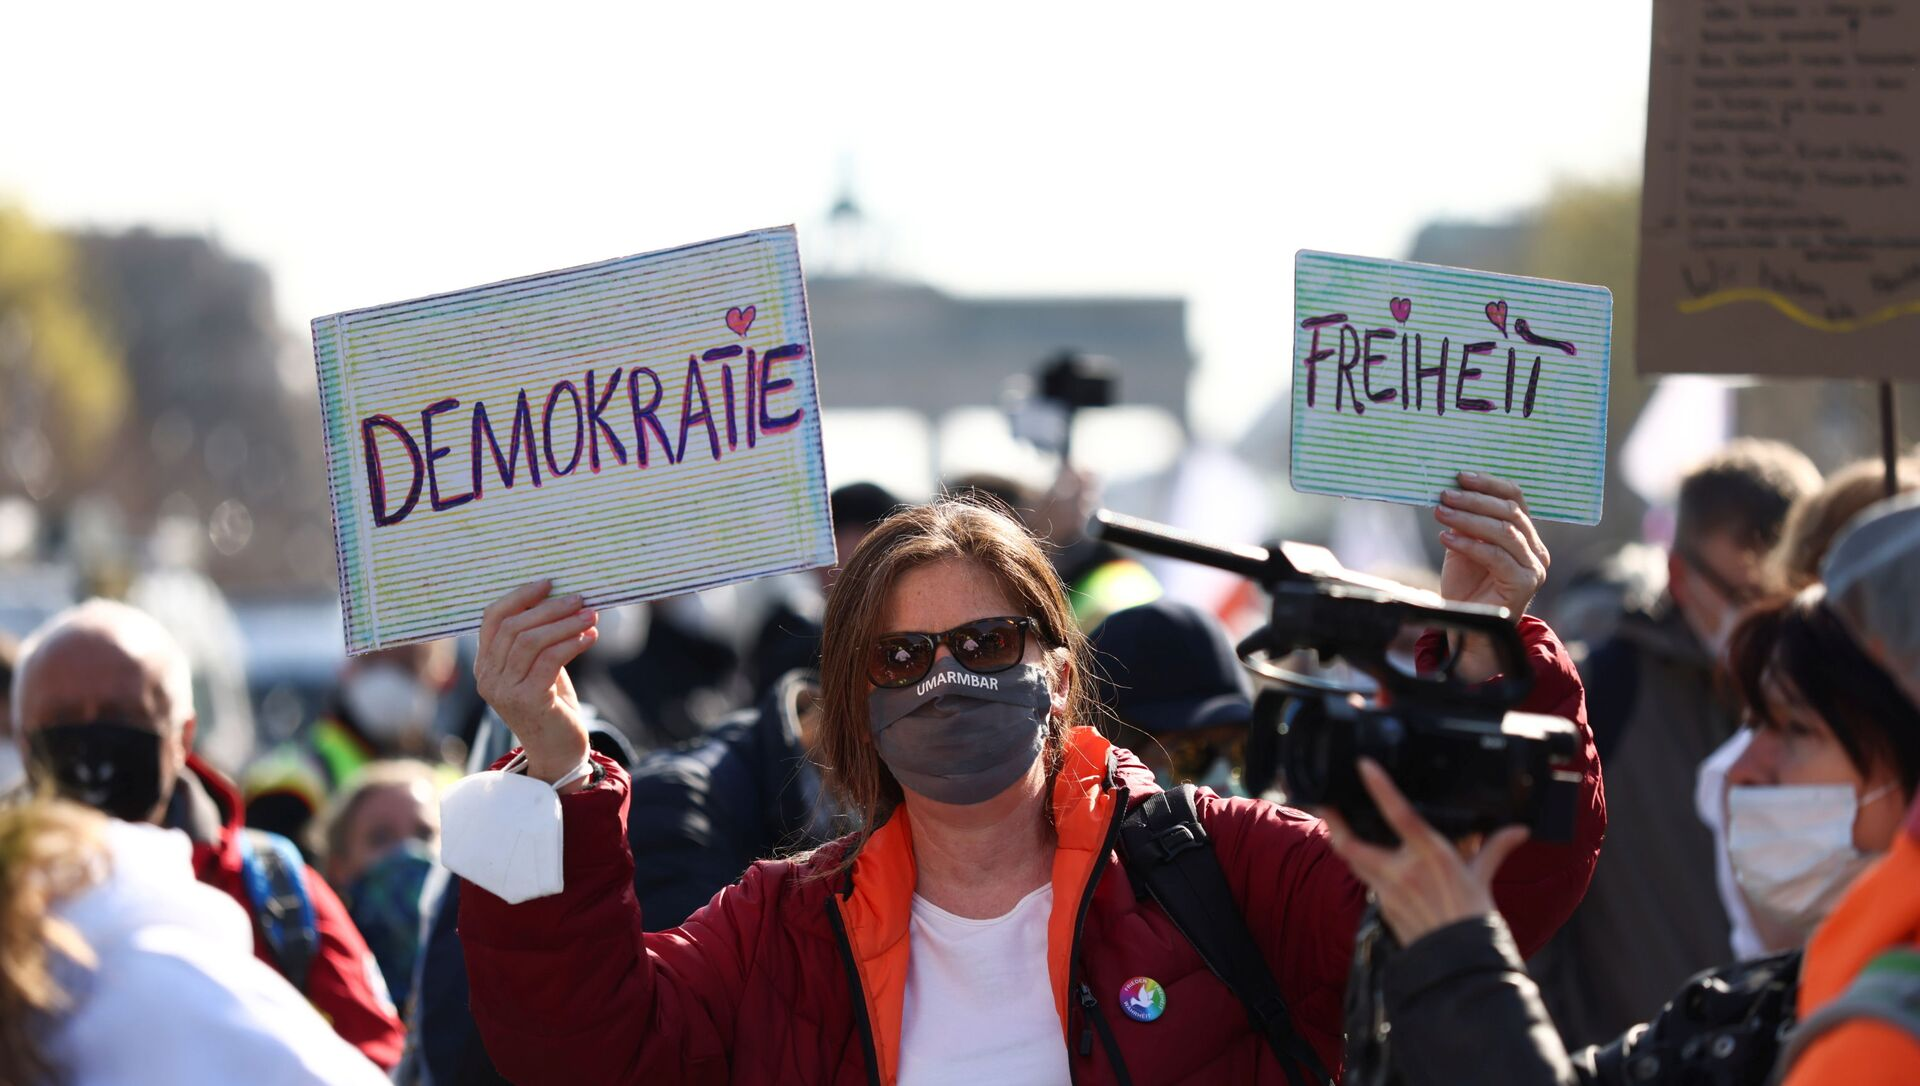 A demonstrator holds up signs reading democracy and freedom during a protest against the government measures to curb the spread of the coronavirus disease (COVID-19), on the day of discussion in the lower house of parliament Bundestag regarding additions for the Infection Protection Act, in Berlin, Germany April 21, 2021 - Sputnik International, 1920, 21.04.2021